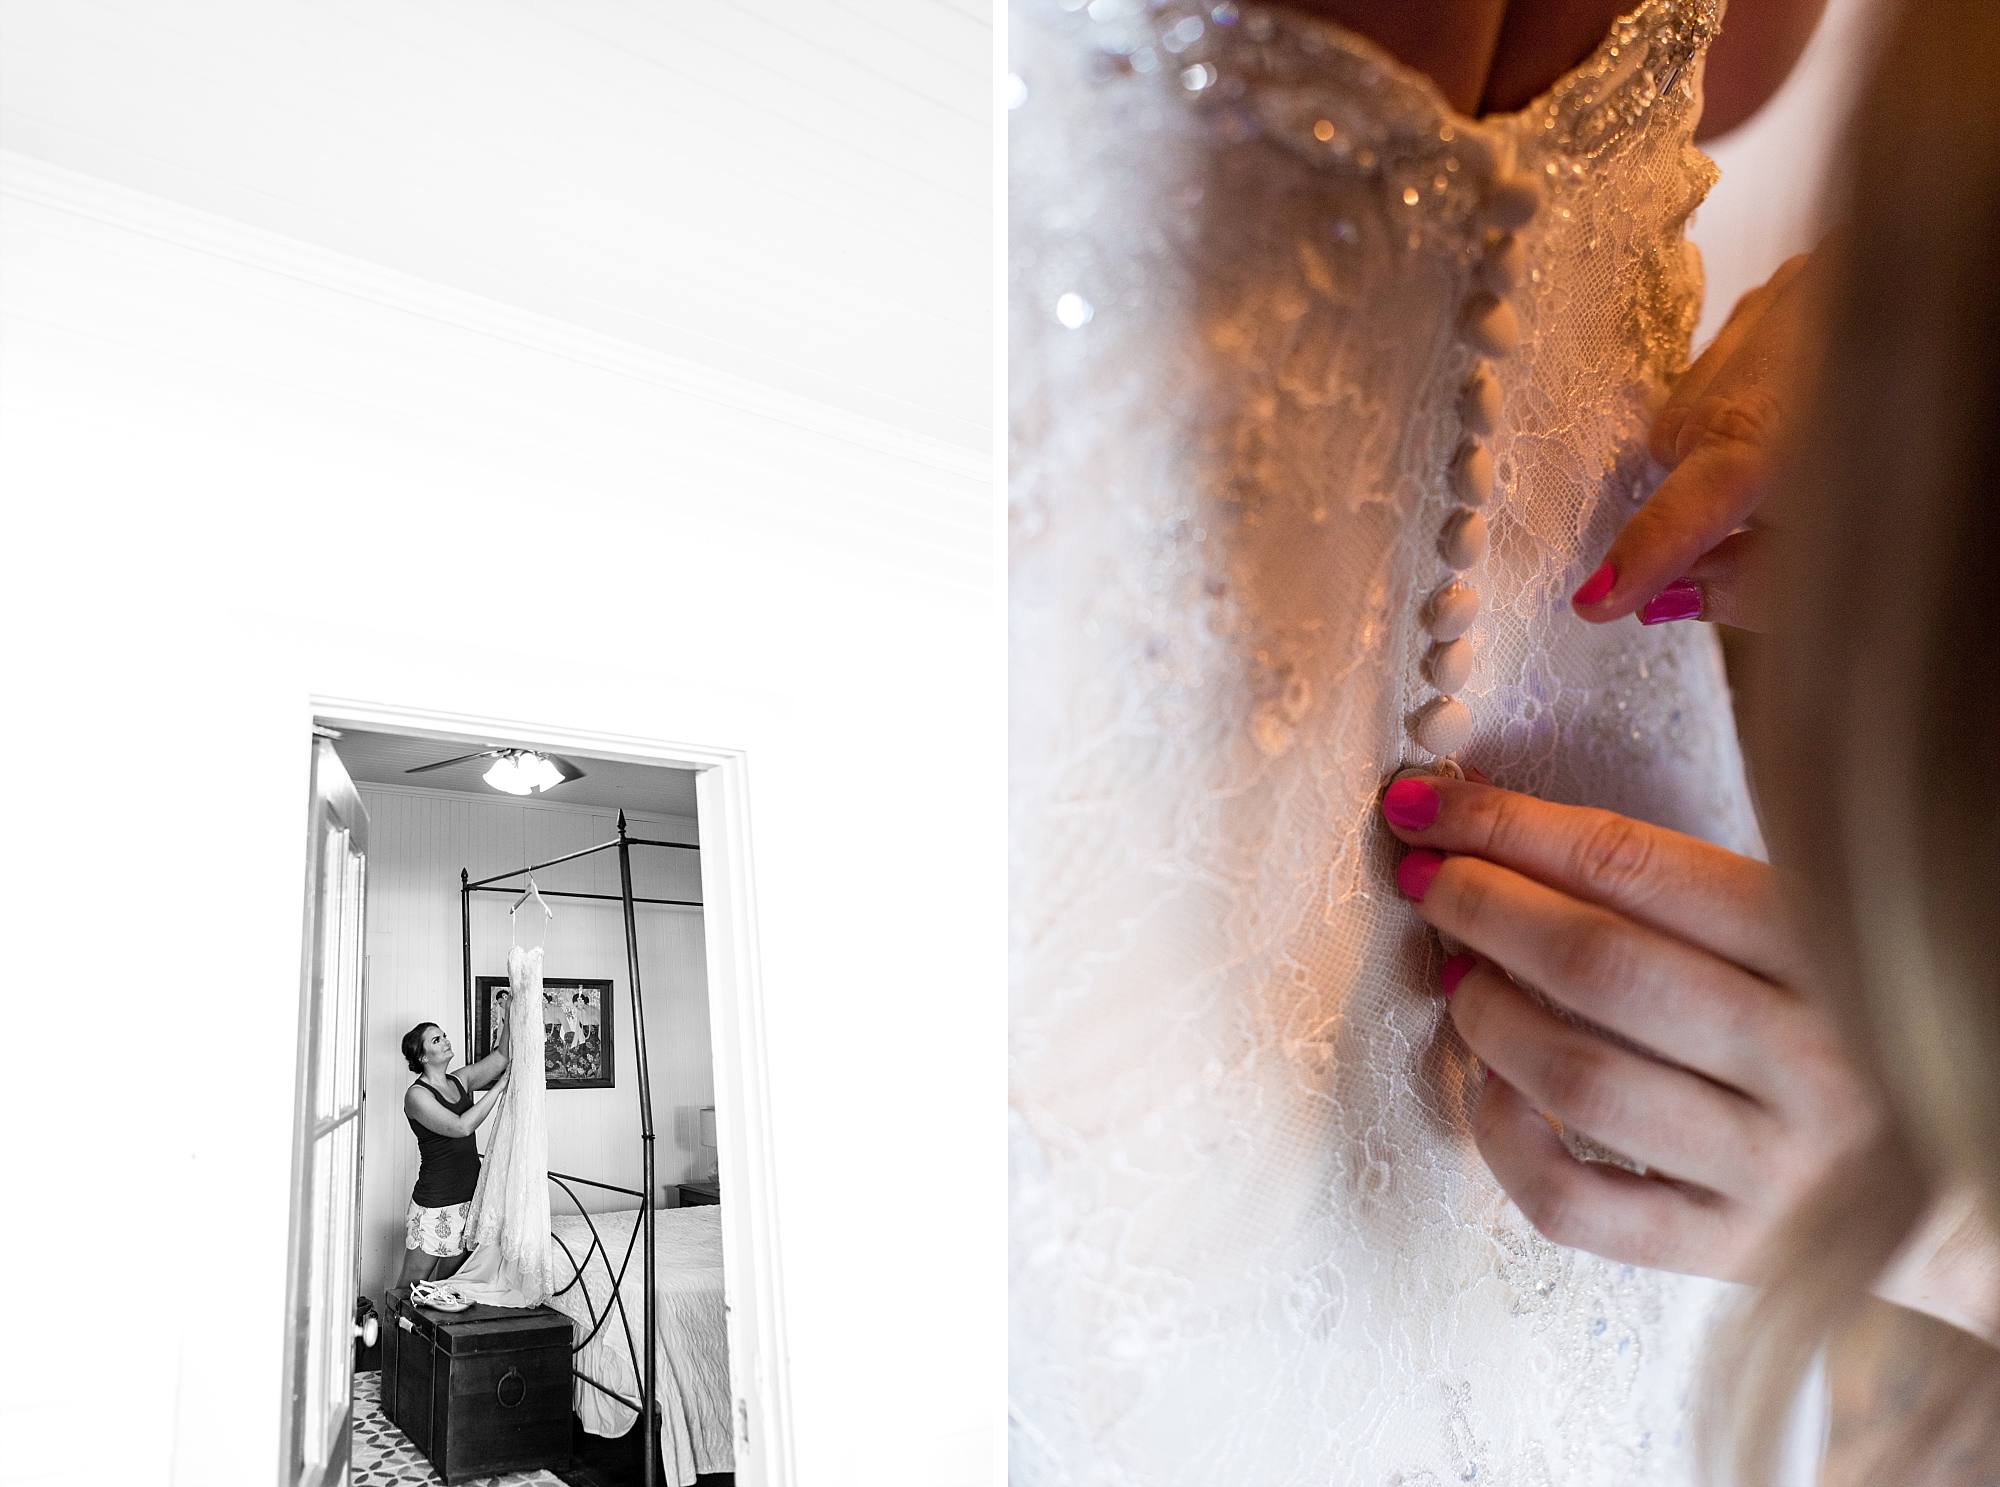 Bride getting ready to put dress on and buttoning up wedding dress